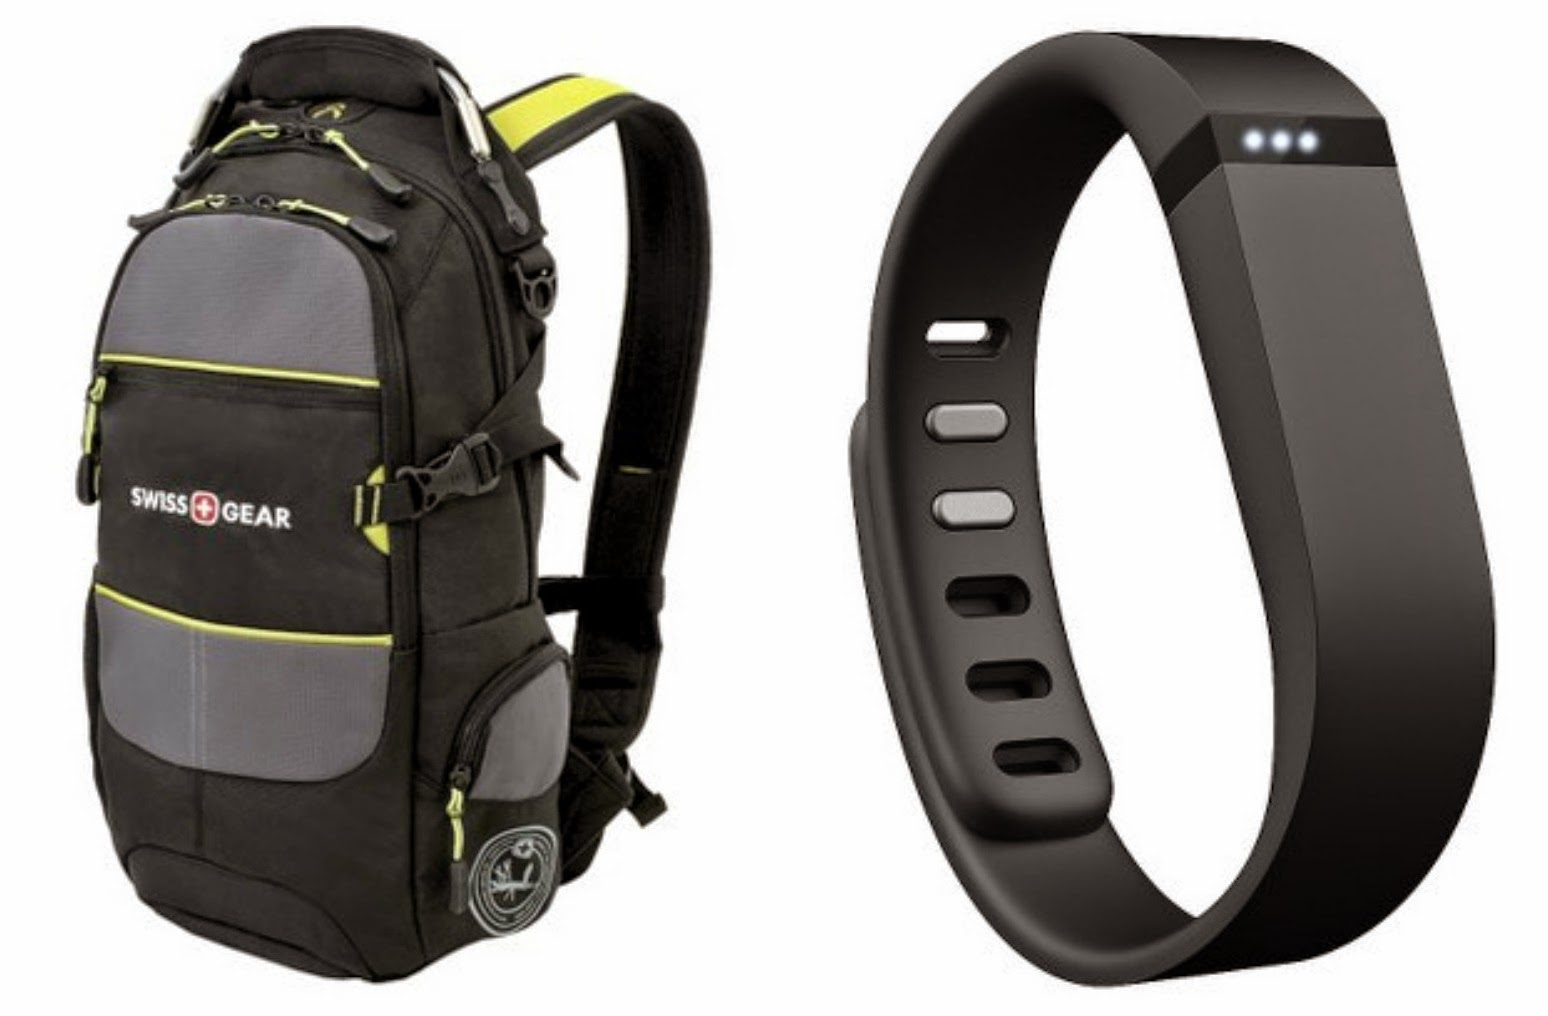 swiss gear fitbit flex